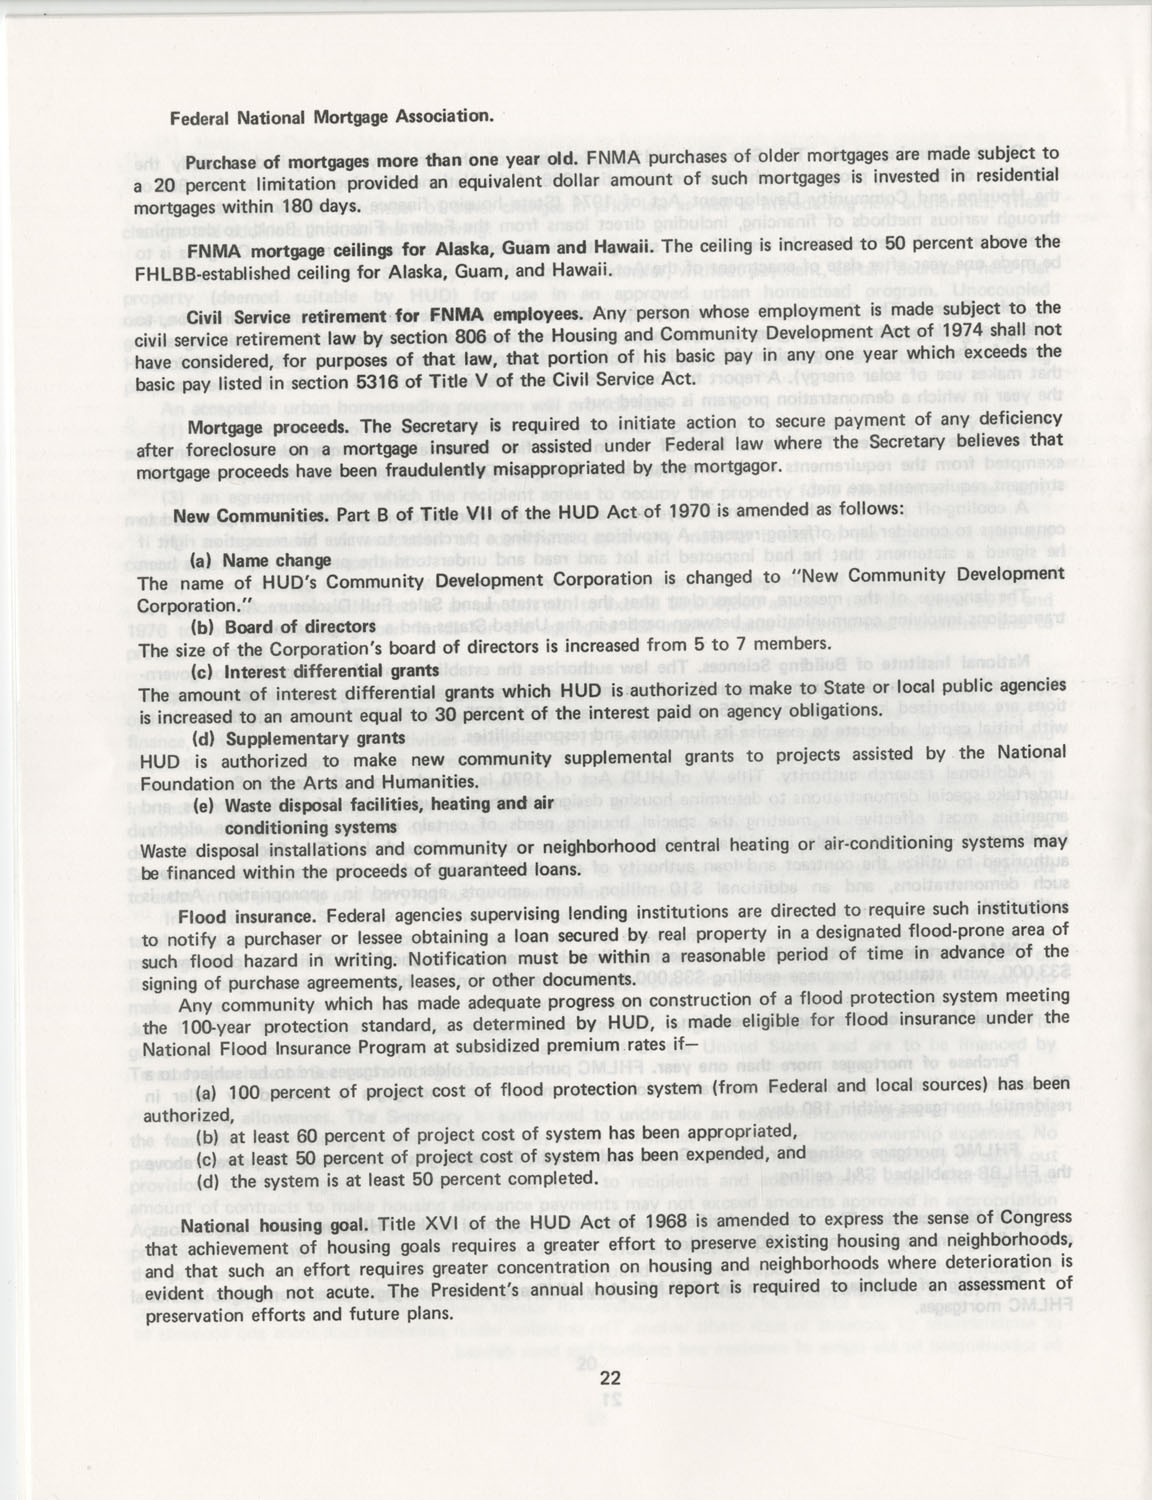 Summary of the Housing and Community Development Act of 1974, Page 22